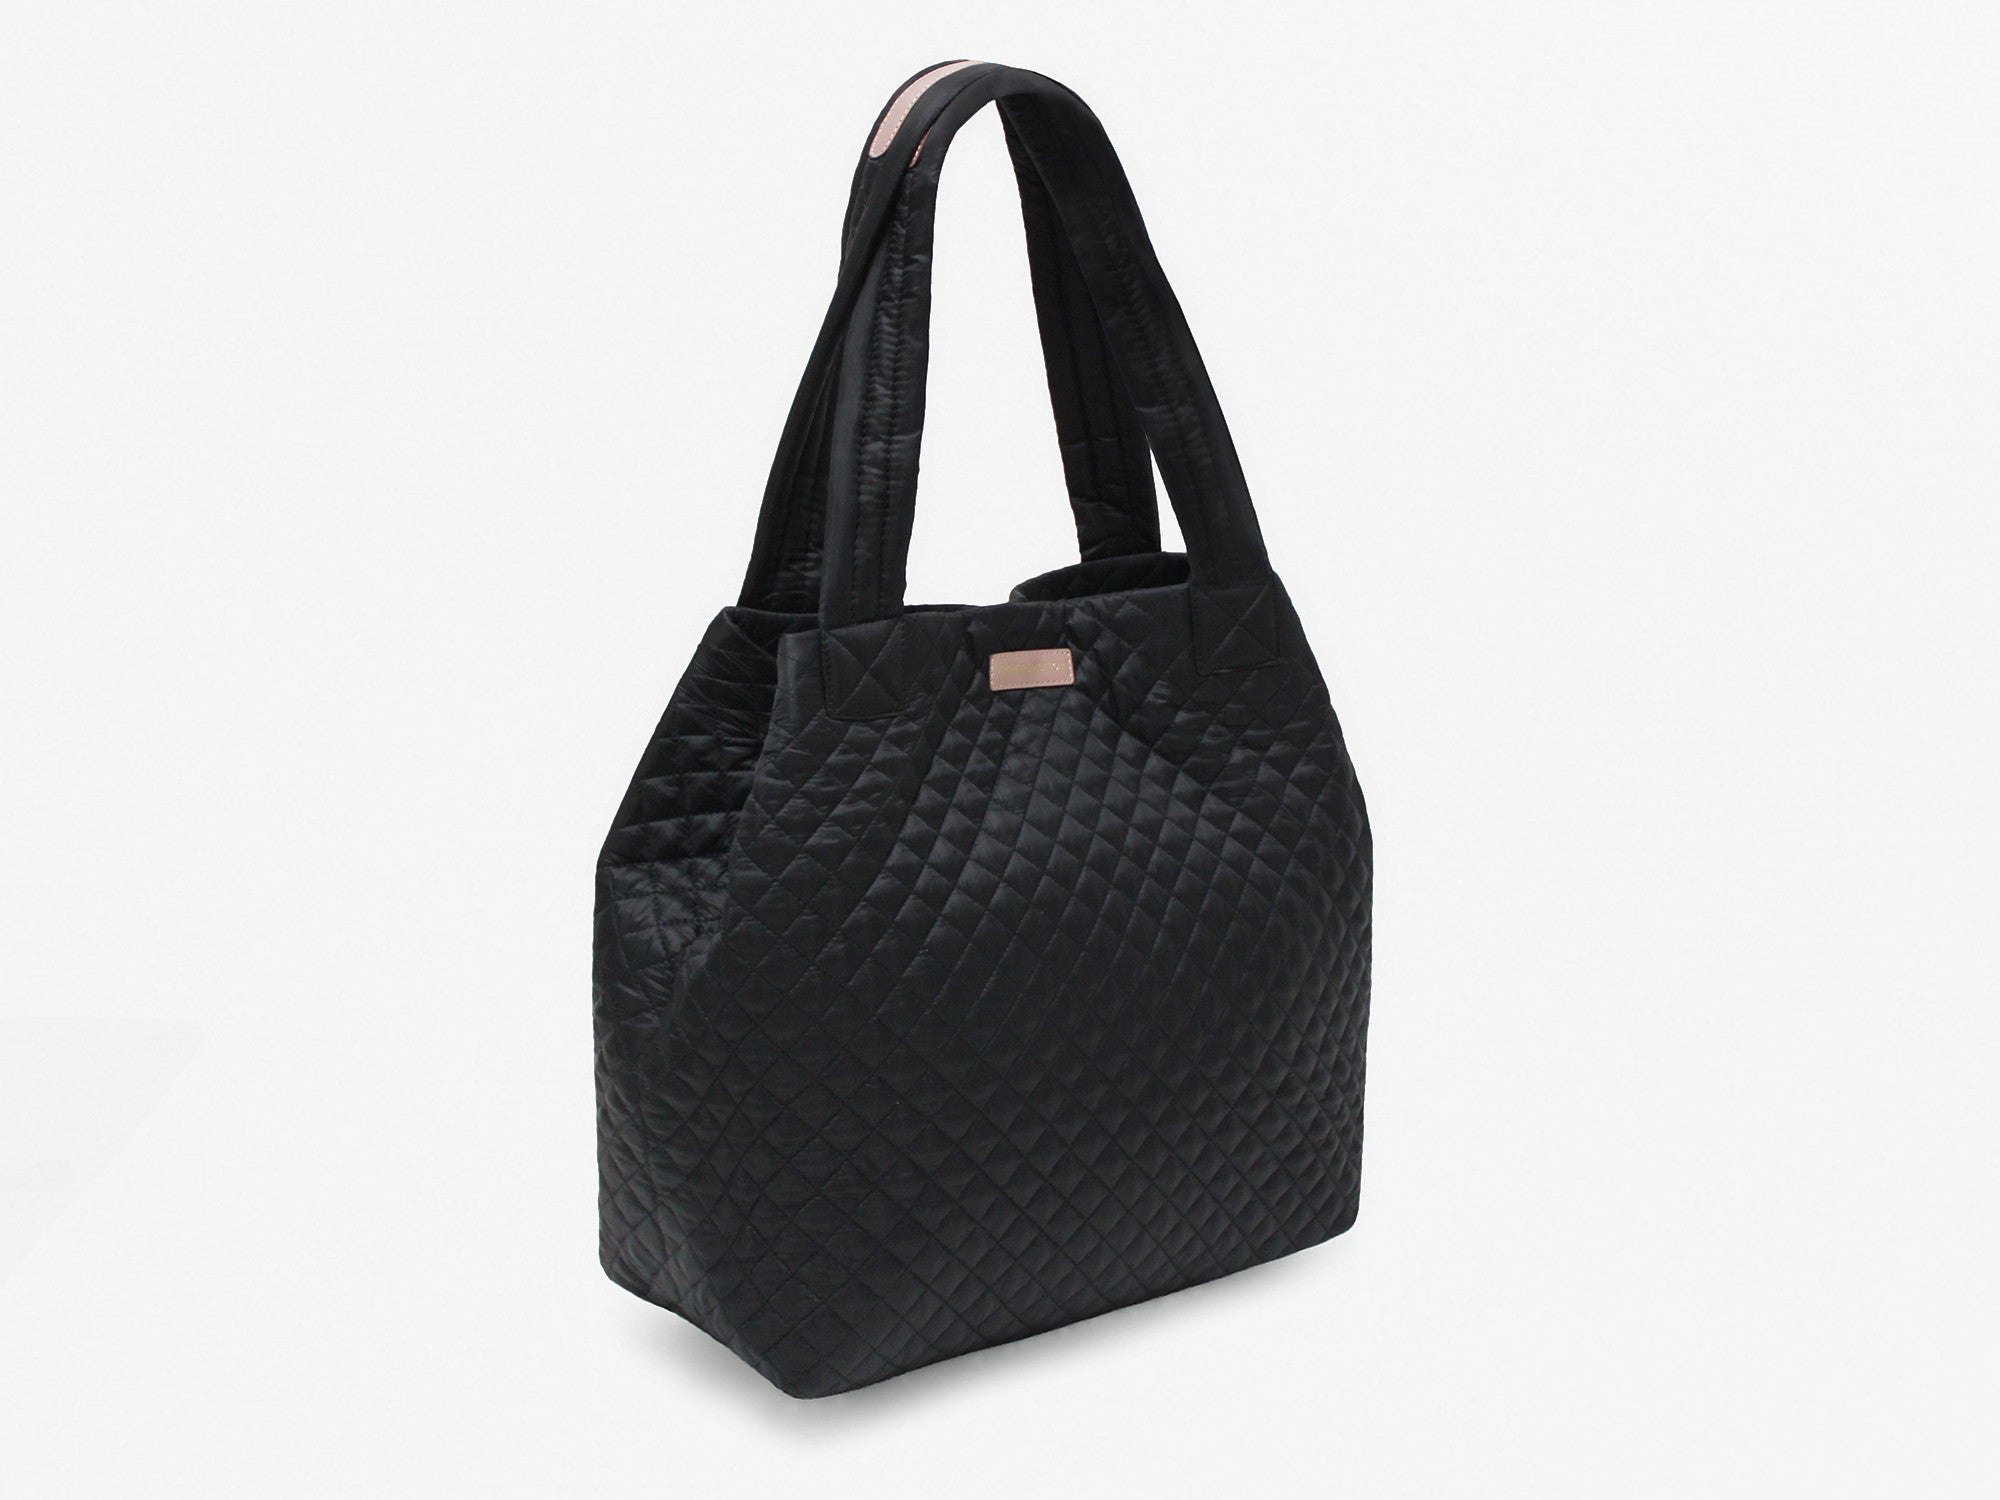 THE CHLOE SHOPPER TOTE